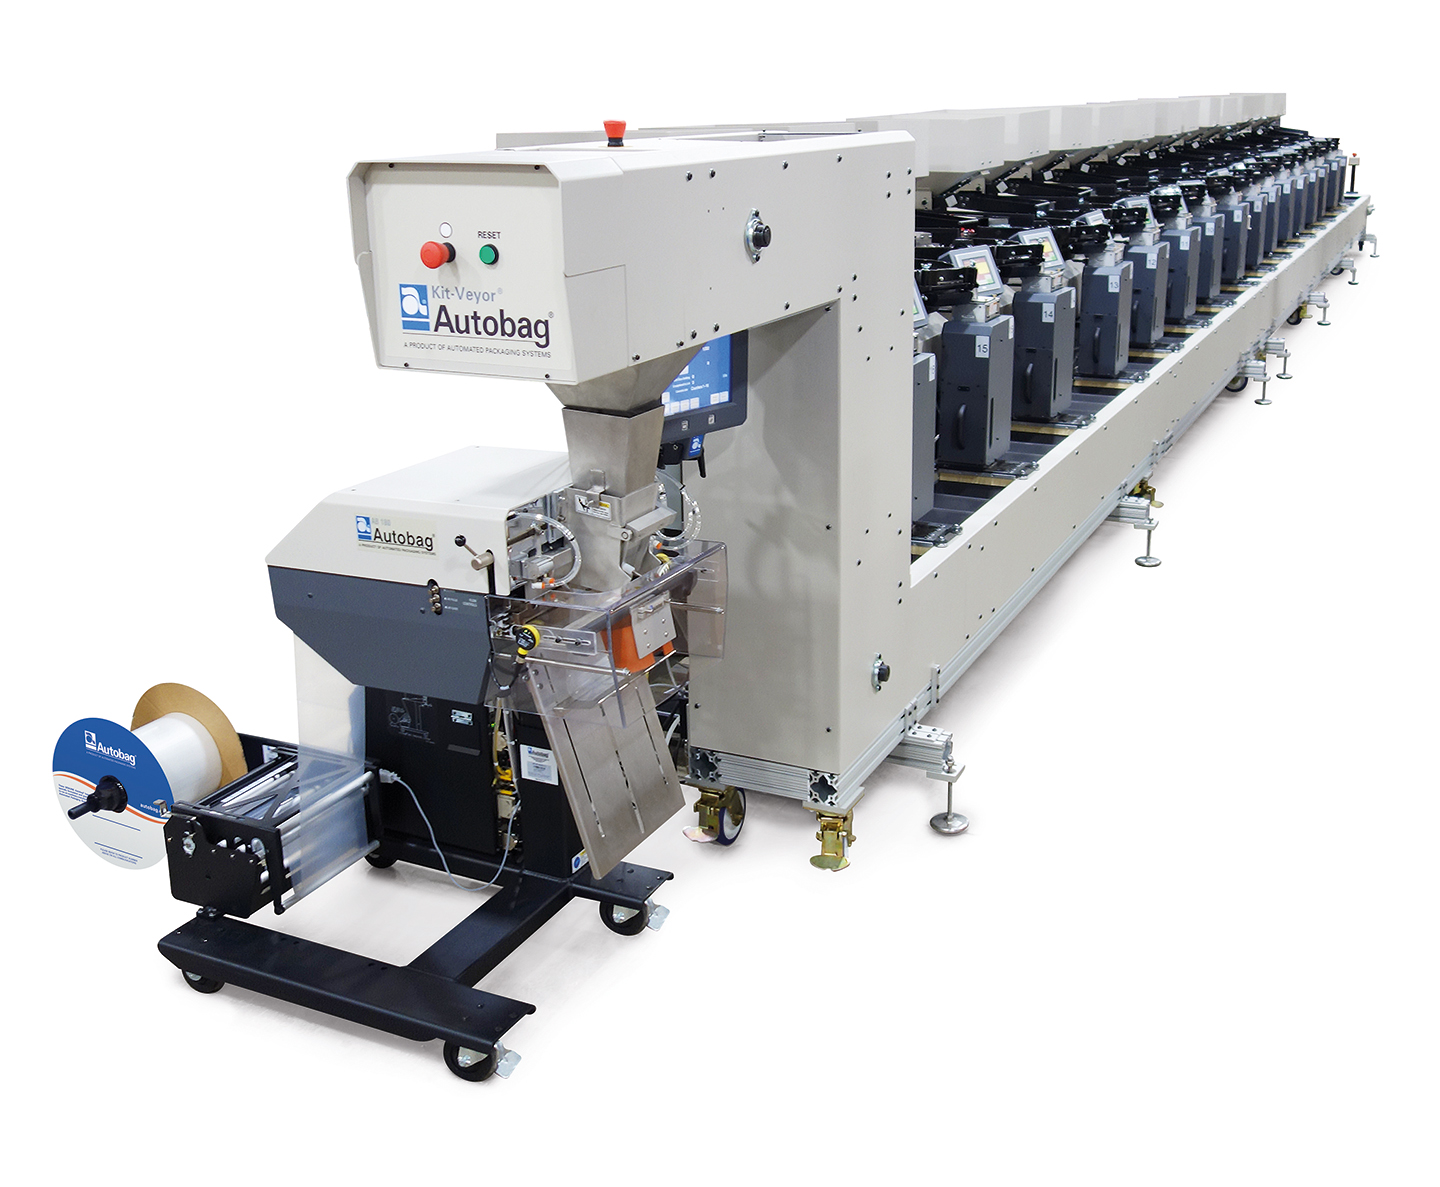 Autobag Kit-Veyor Packaging Conveyor System beauty